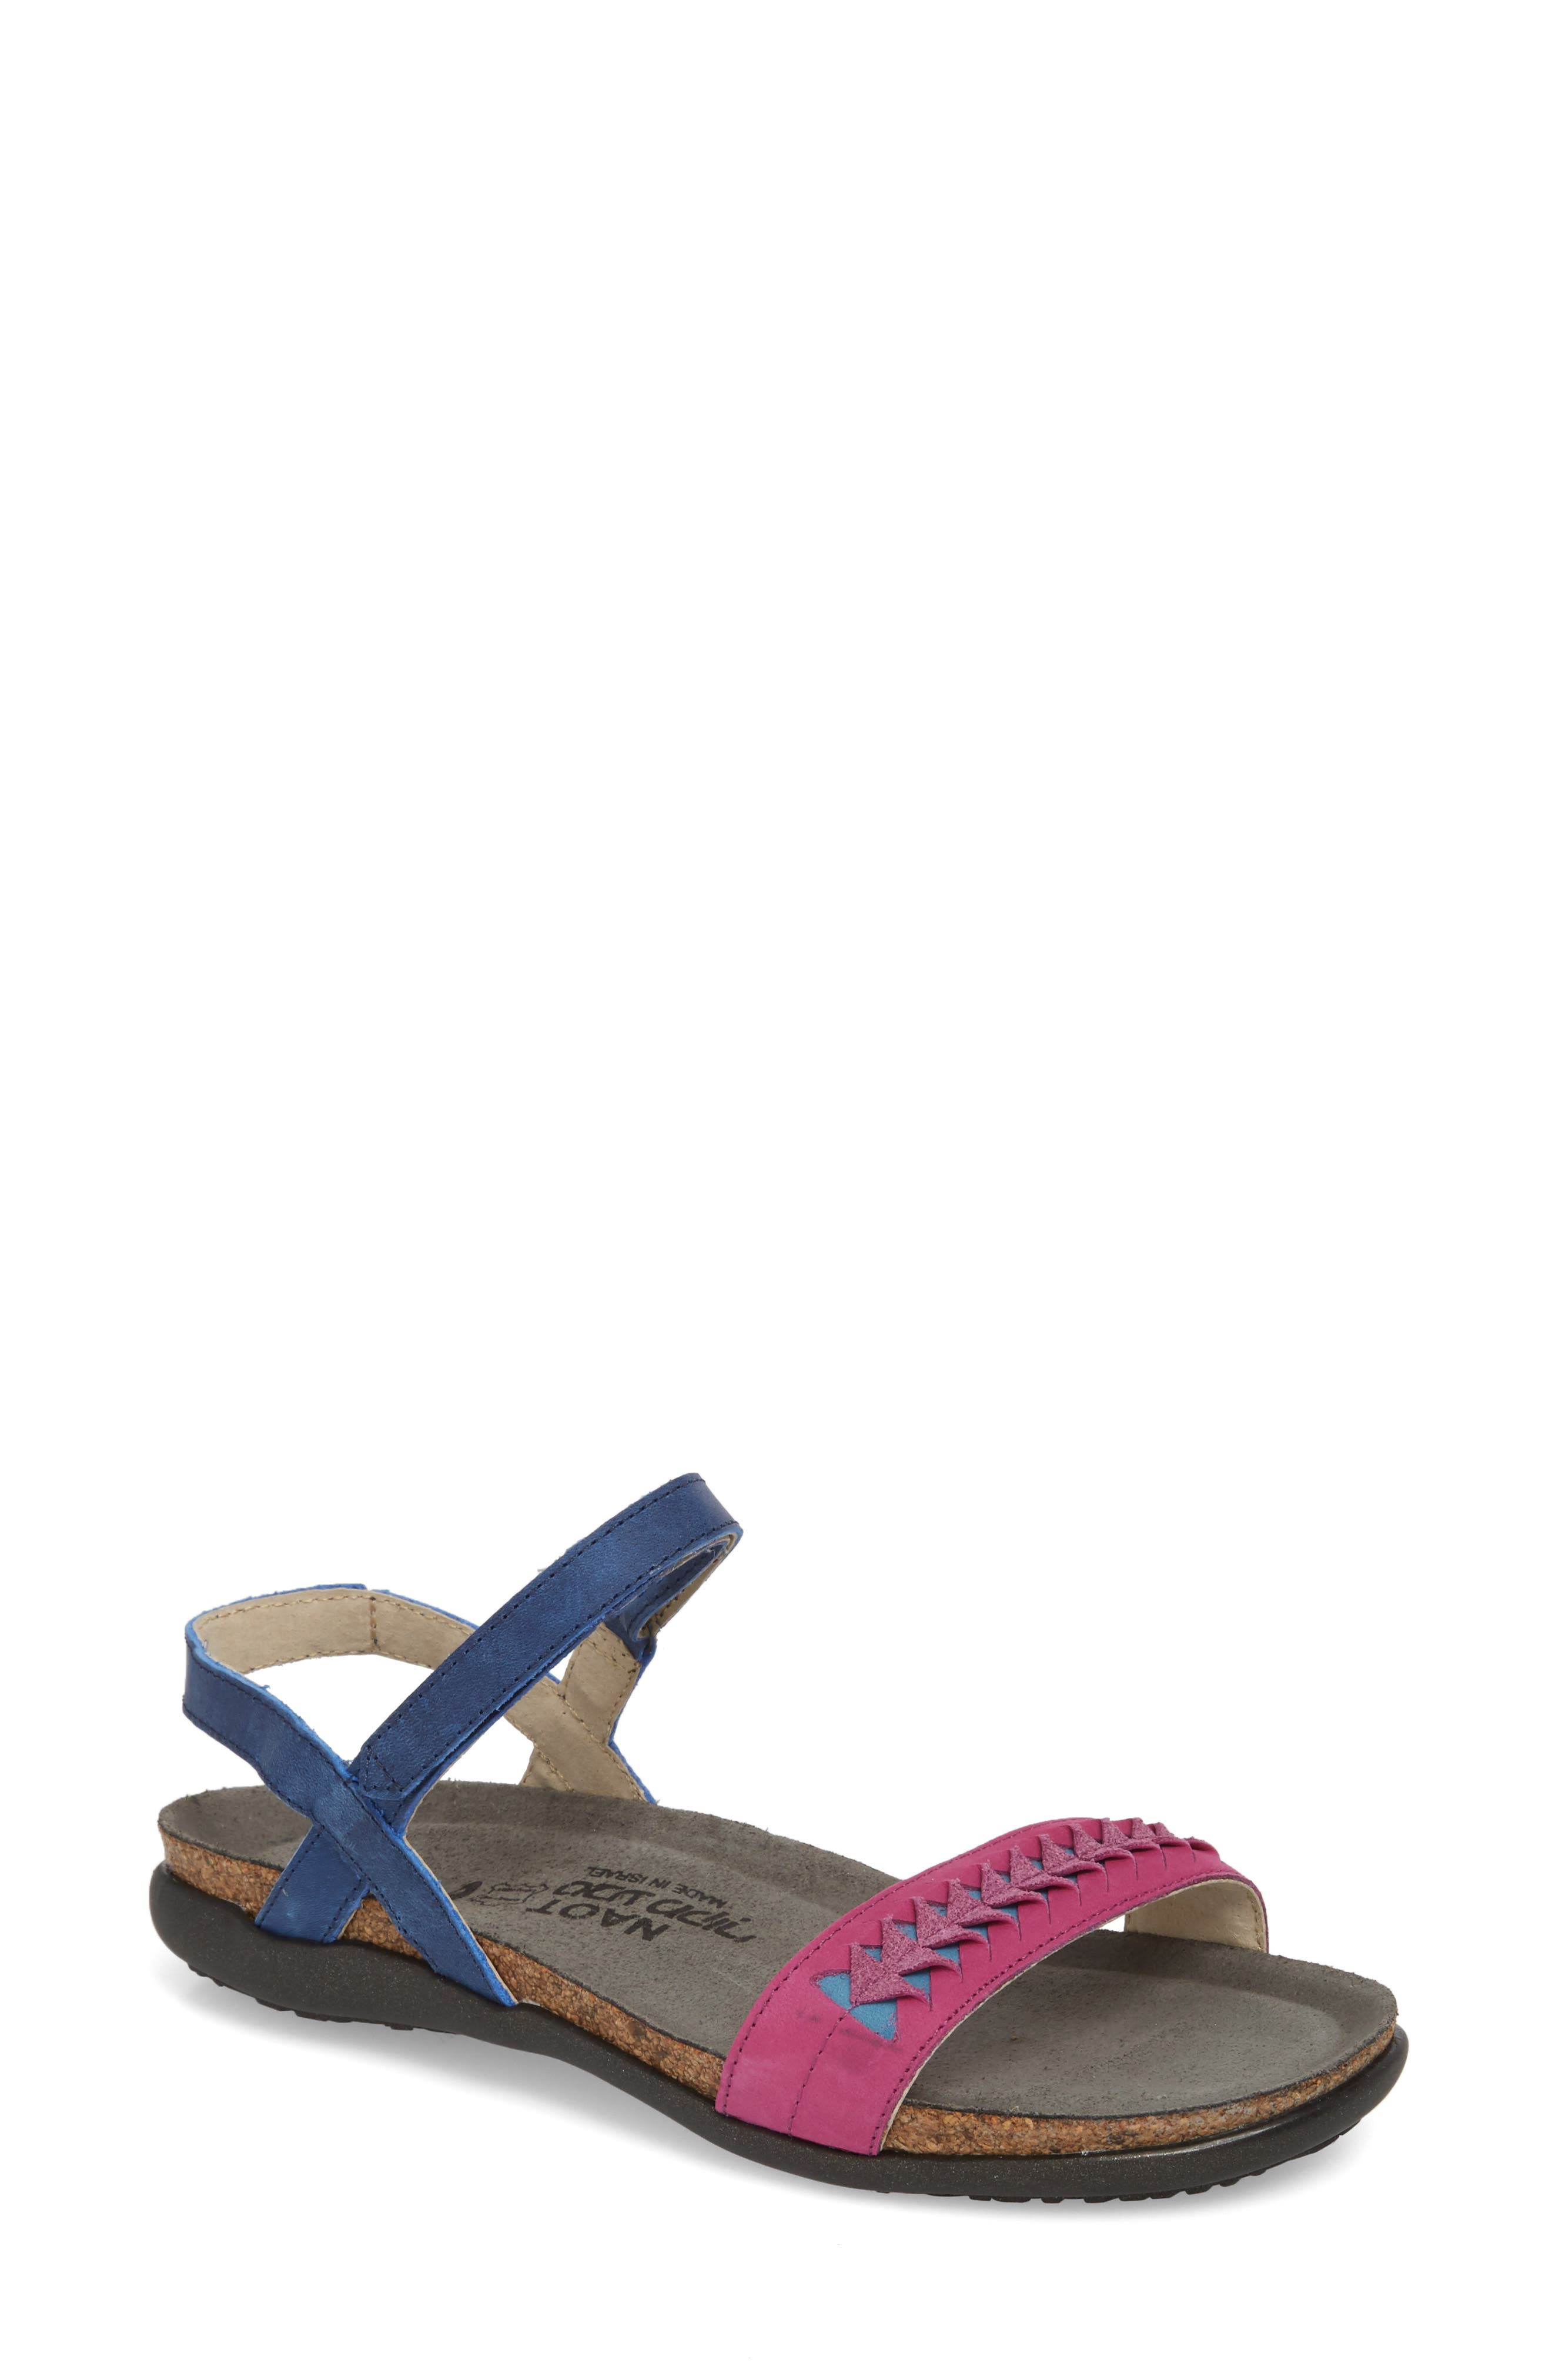 Marble Sandal,                             Main thumbnail 1, color,                             Oily Blue Nubuck